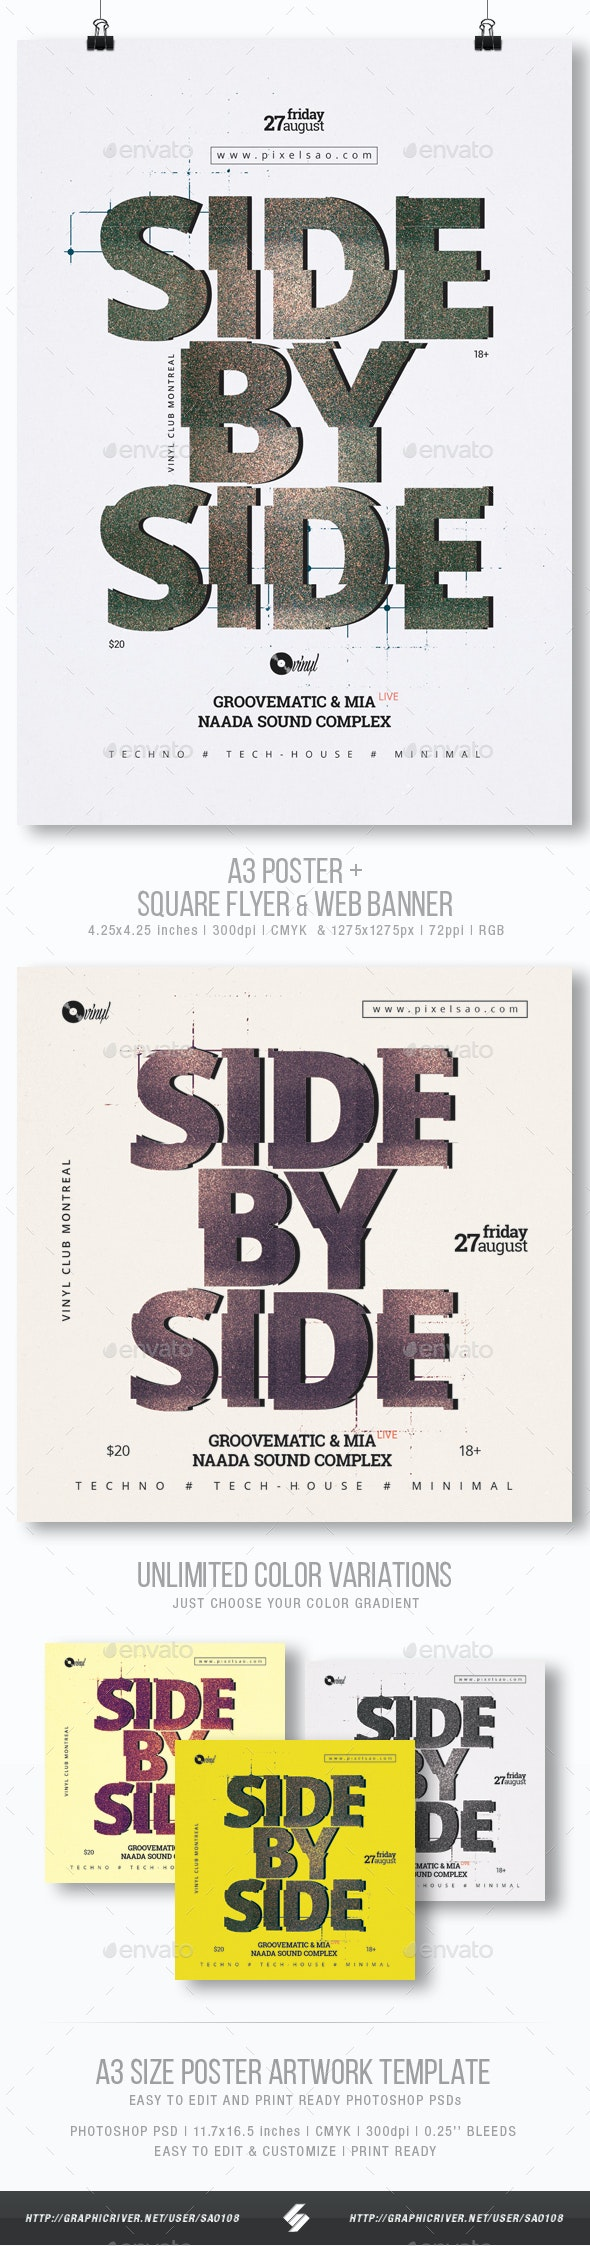 Side By Side - Minimal Party Flyer / Poster Template A3 - Clubs & Parties Events